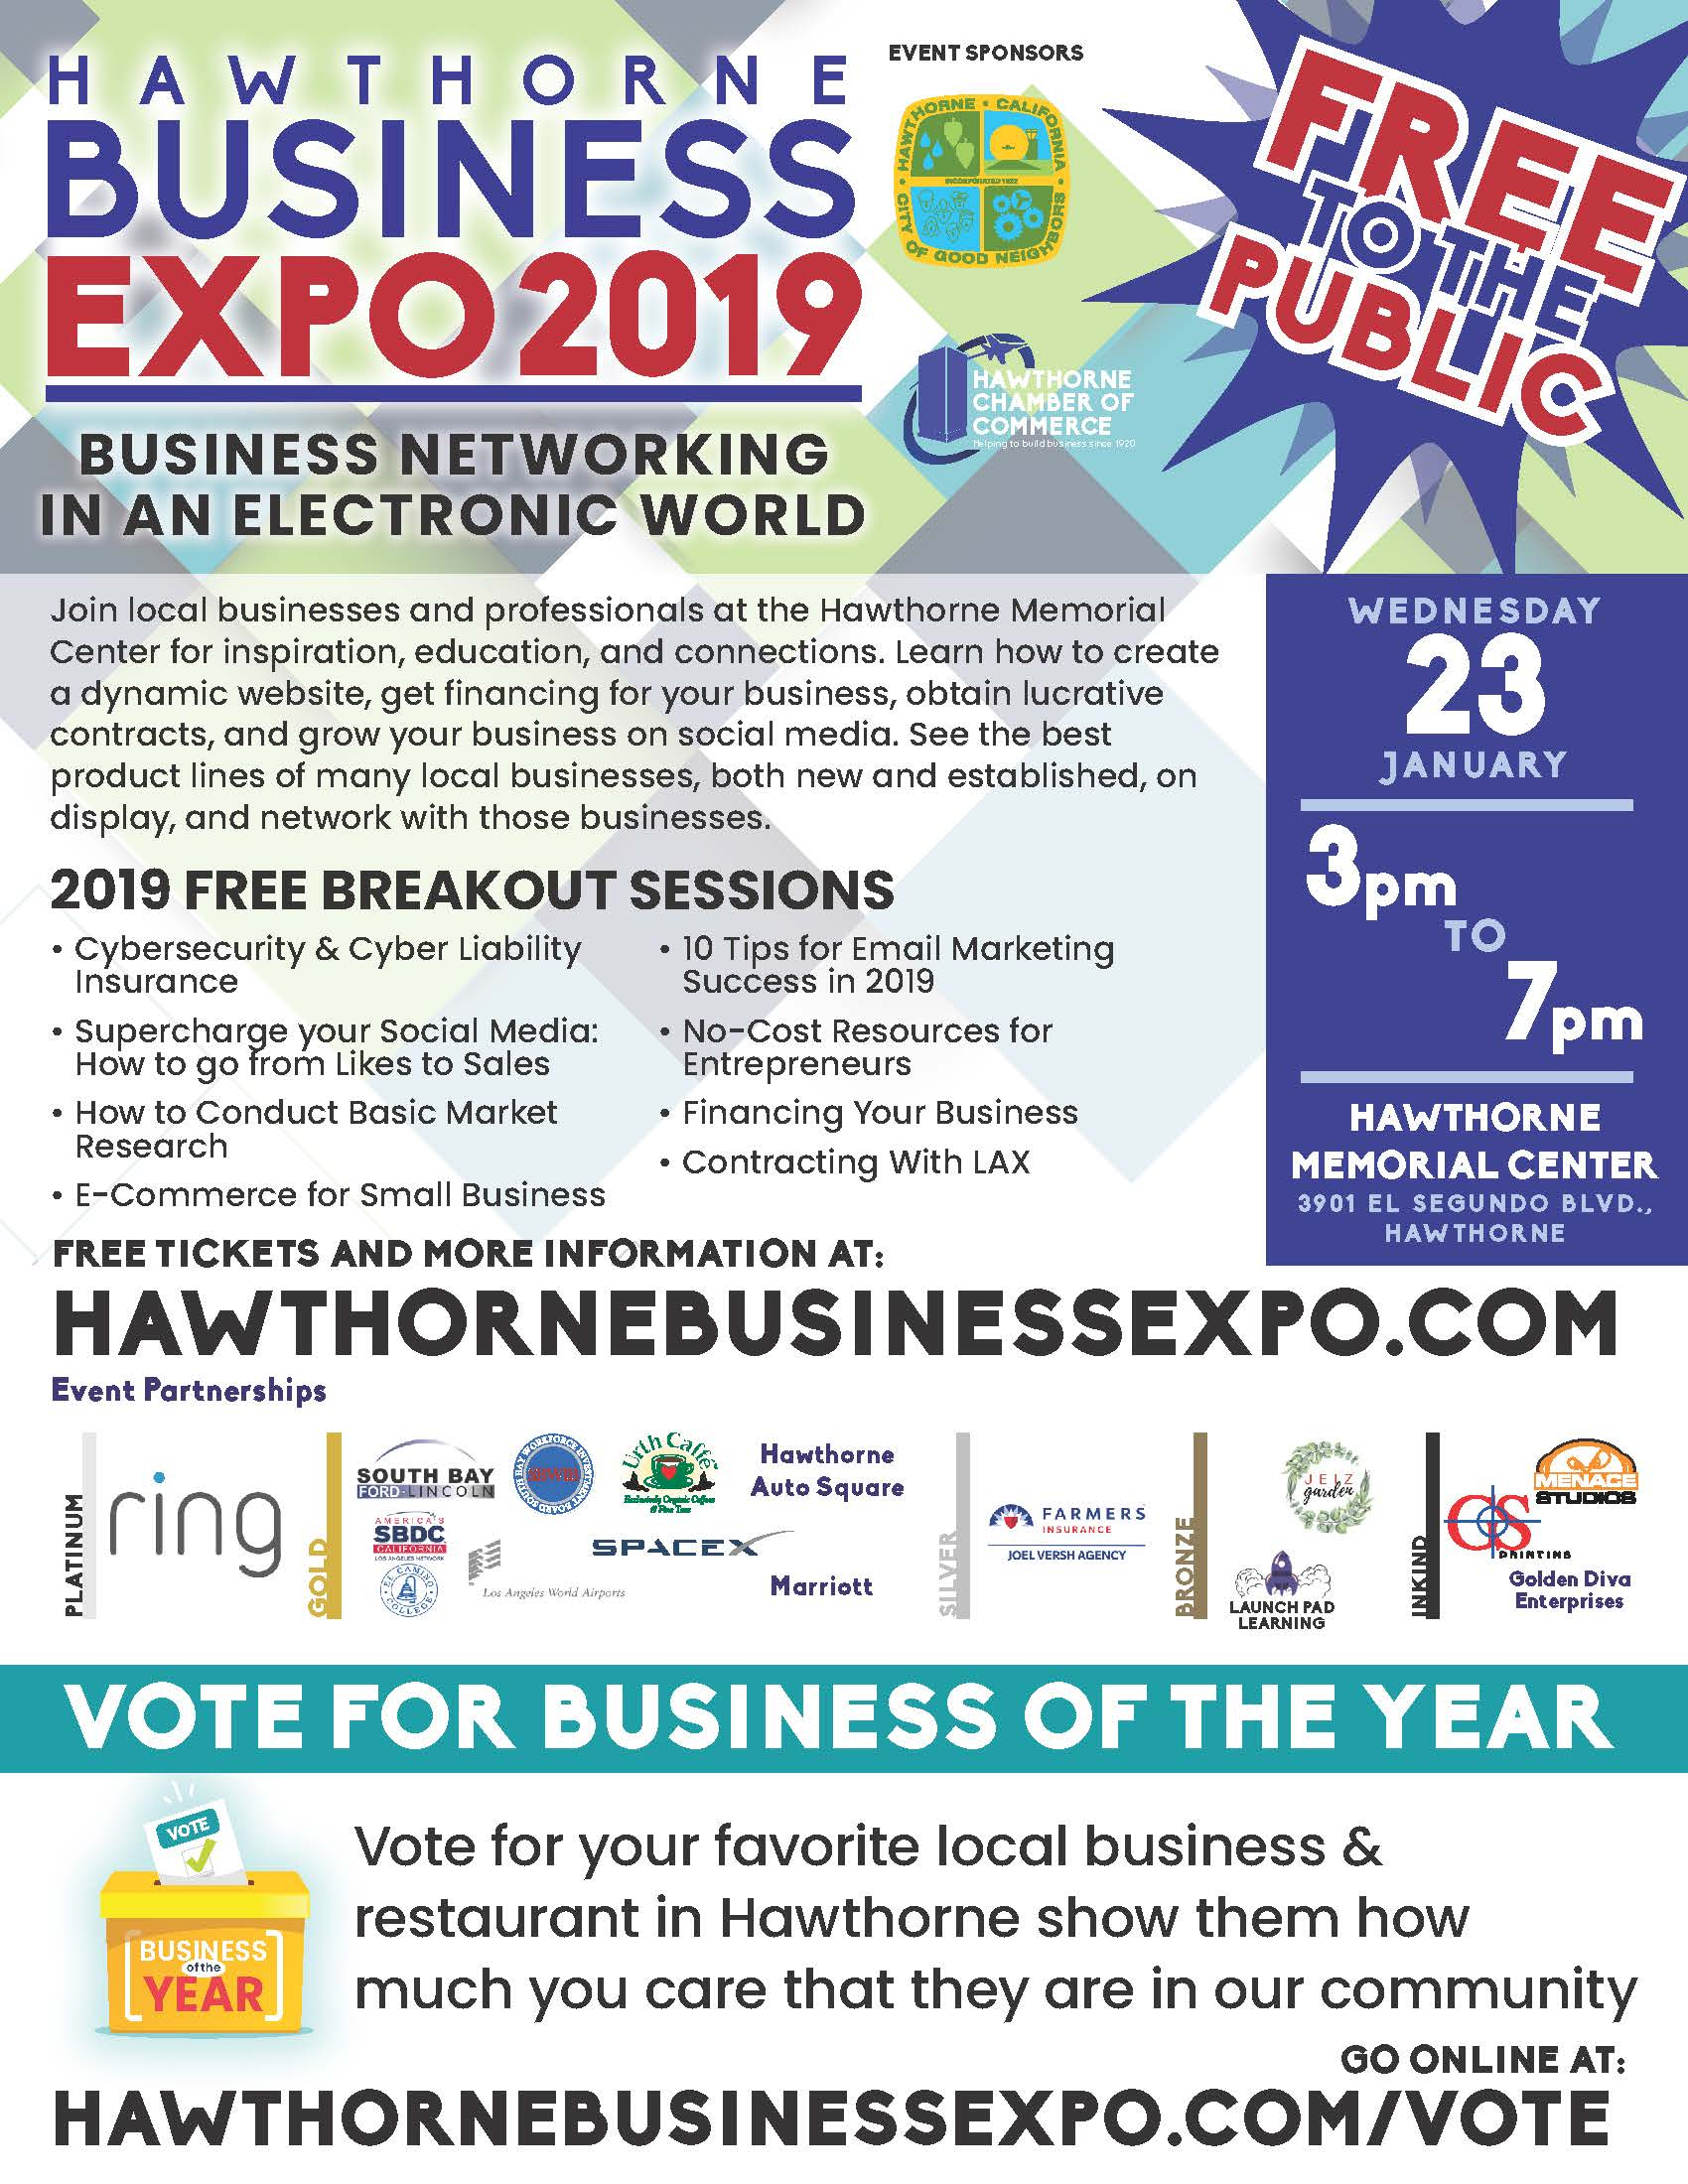 Hawthorne Business Expo 2019